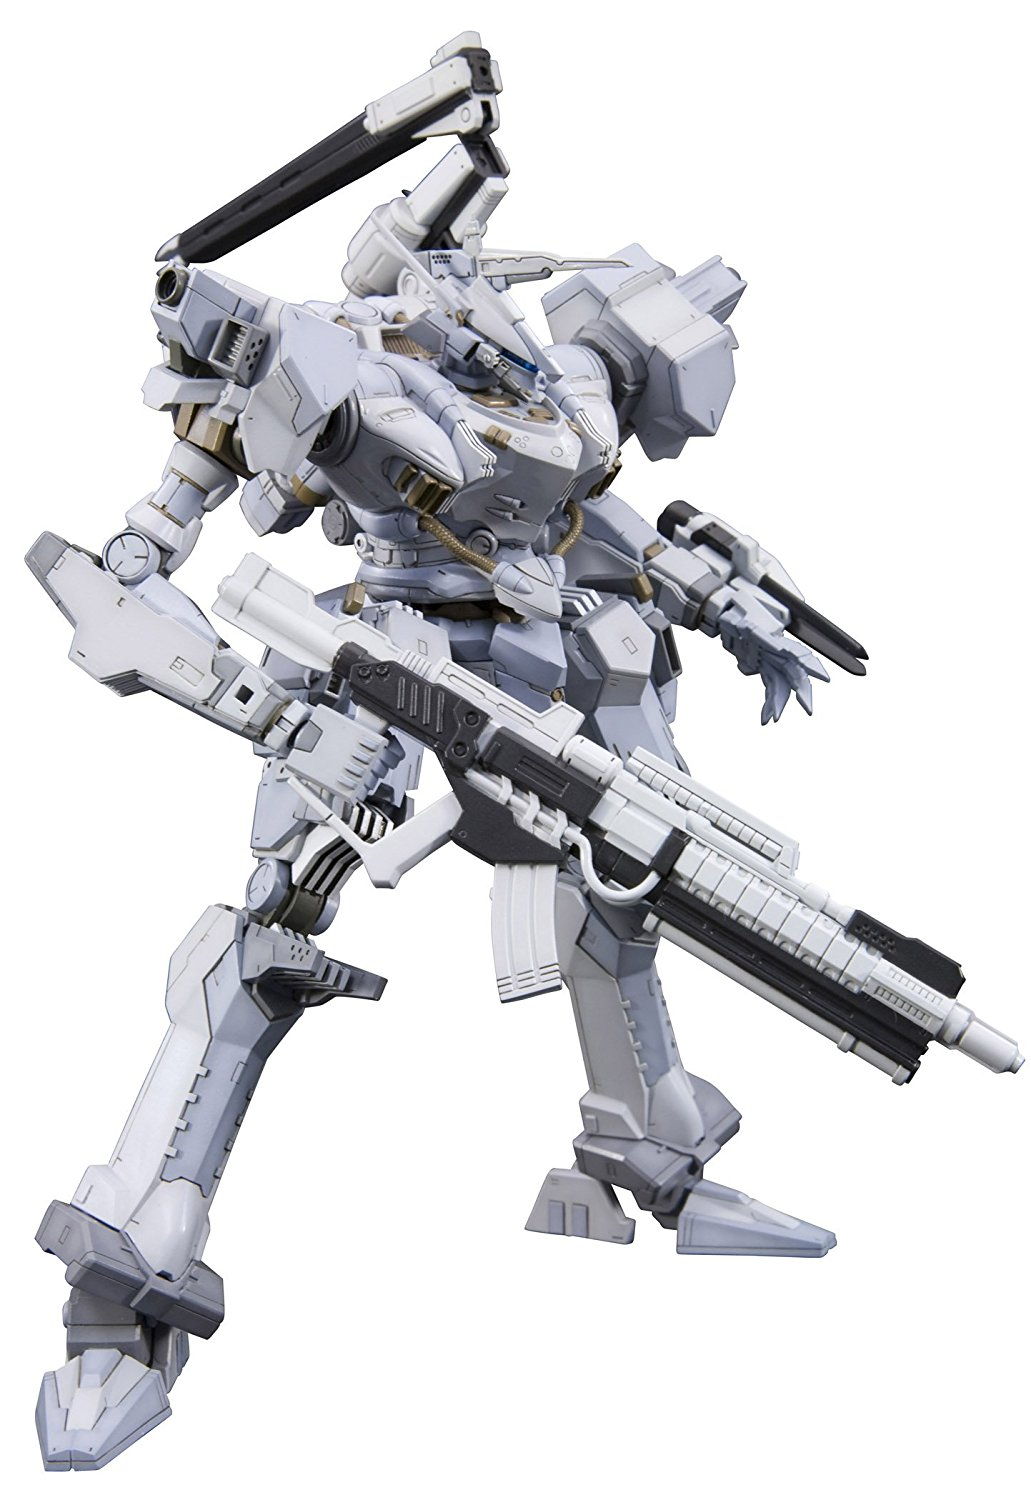 Armored Core 4 Fine Scale Model Kit: Aspina White Glint AC4 Version